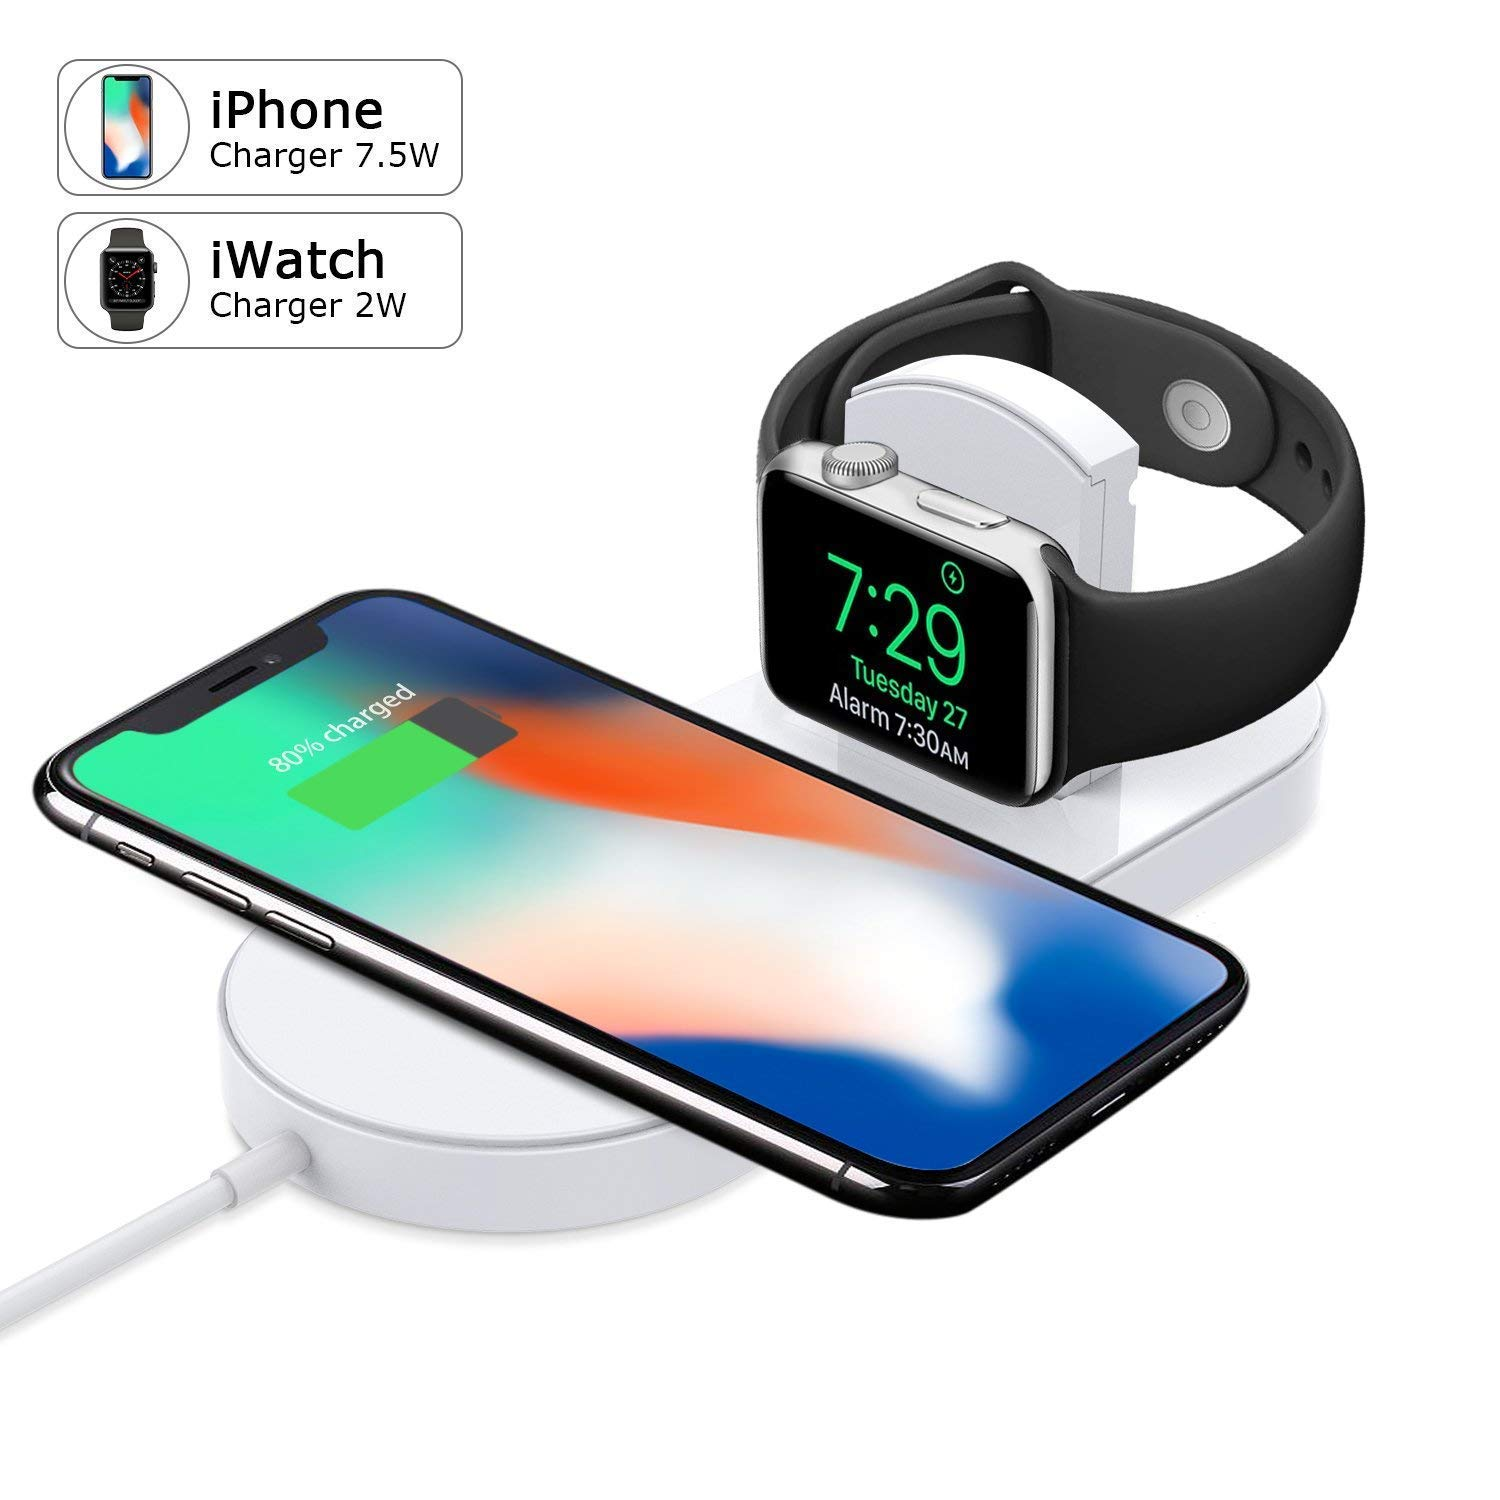 Wireless Charger,KUPPET Magnetic Wireless Charger 2-in-1 Pad Stand Cable Compatible with Apple Watch,for iPhone X/8/8 Plus,Compatible with iWatch Series 1/2/3,38mm 42mm,Samsung S8 Series,Note 8